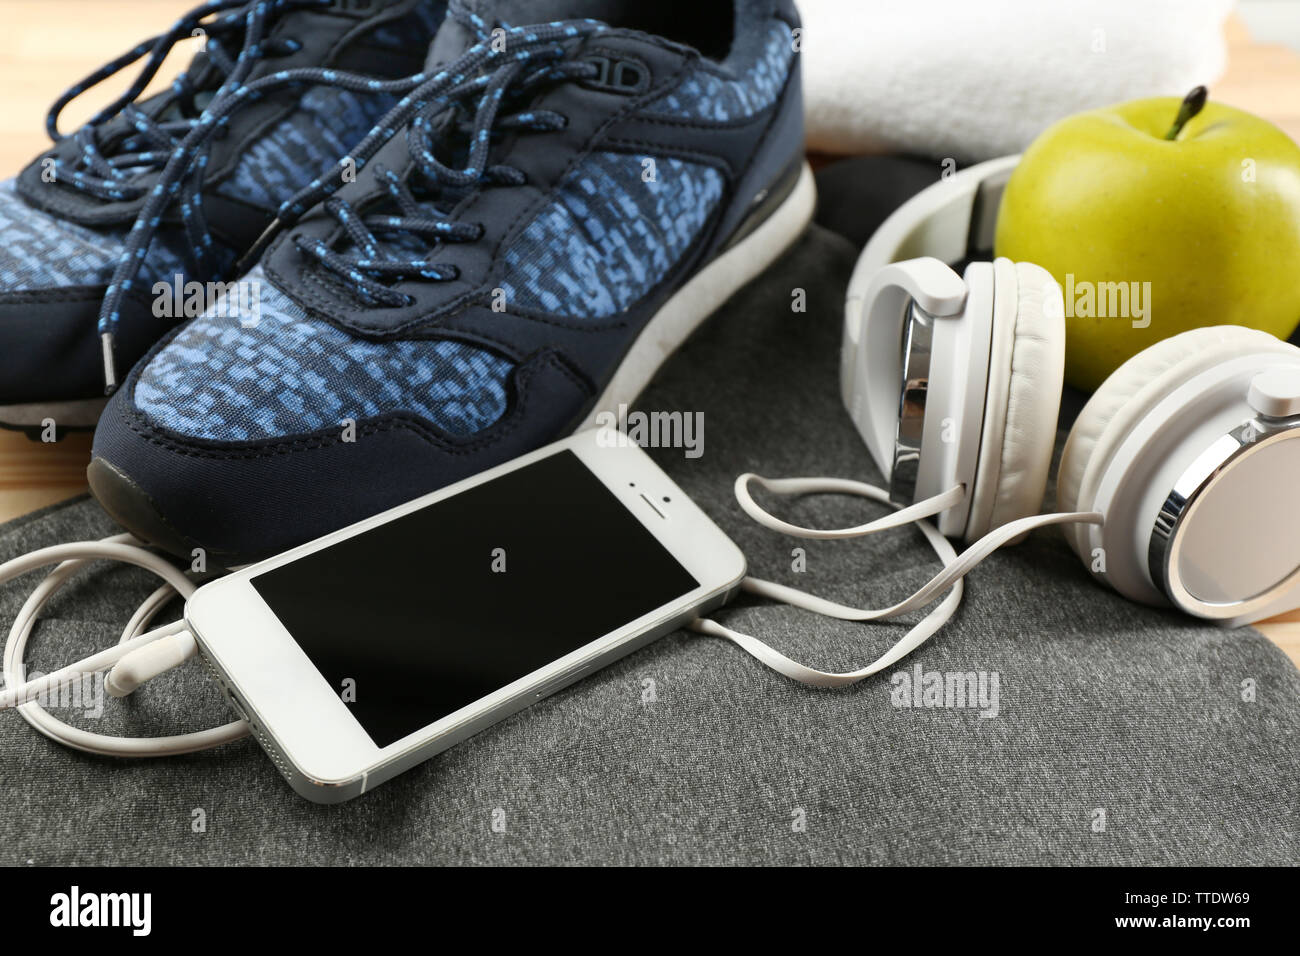 Sport clothes and equipment on wooden background - Stock Image